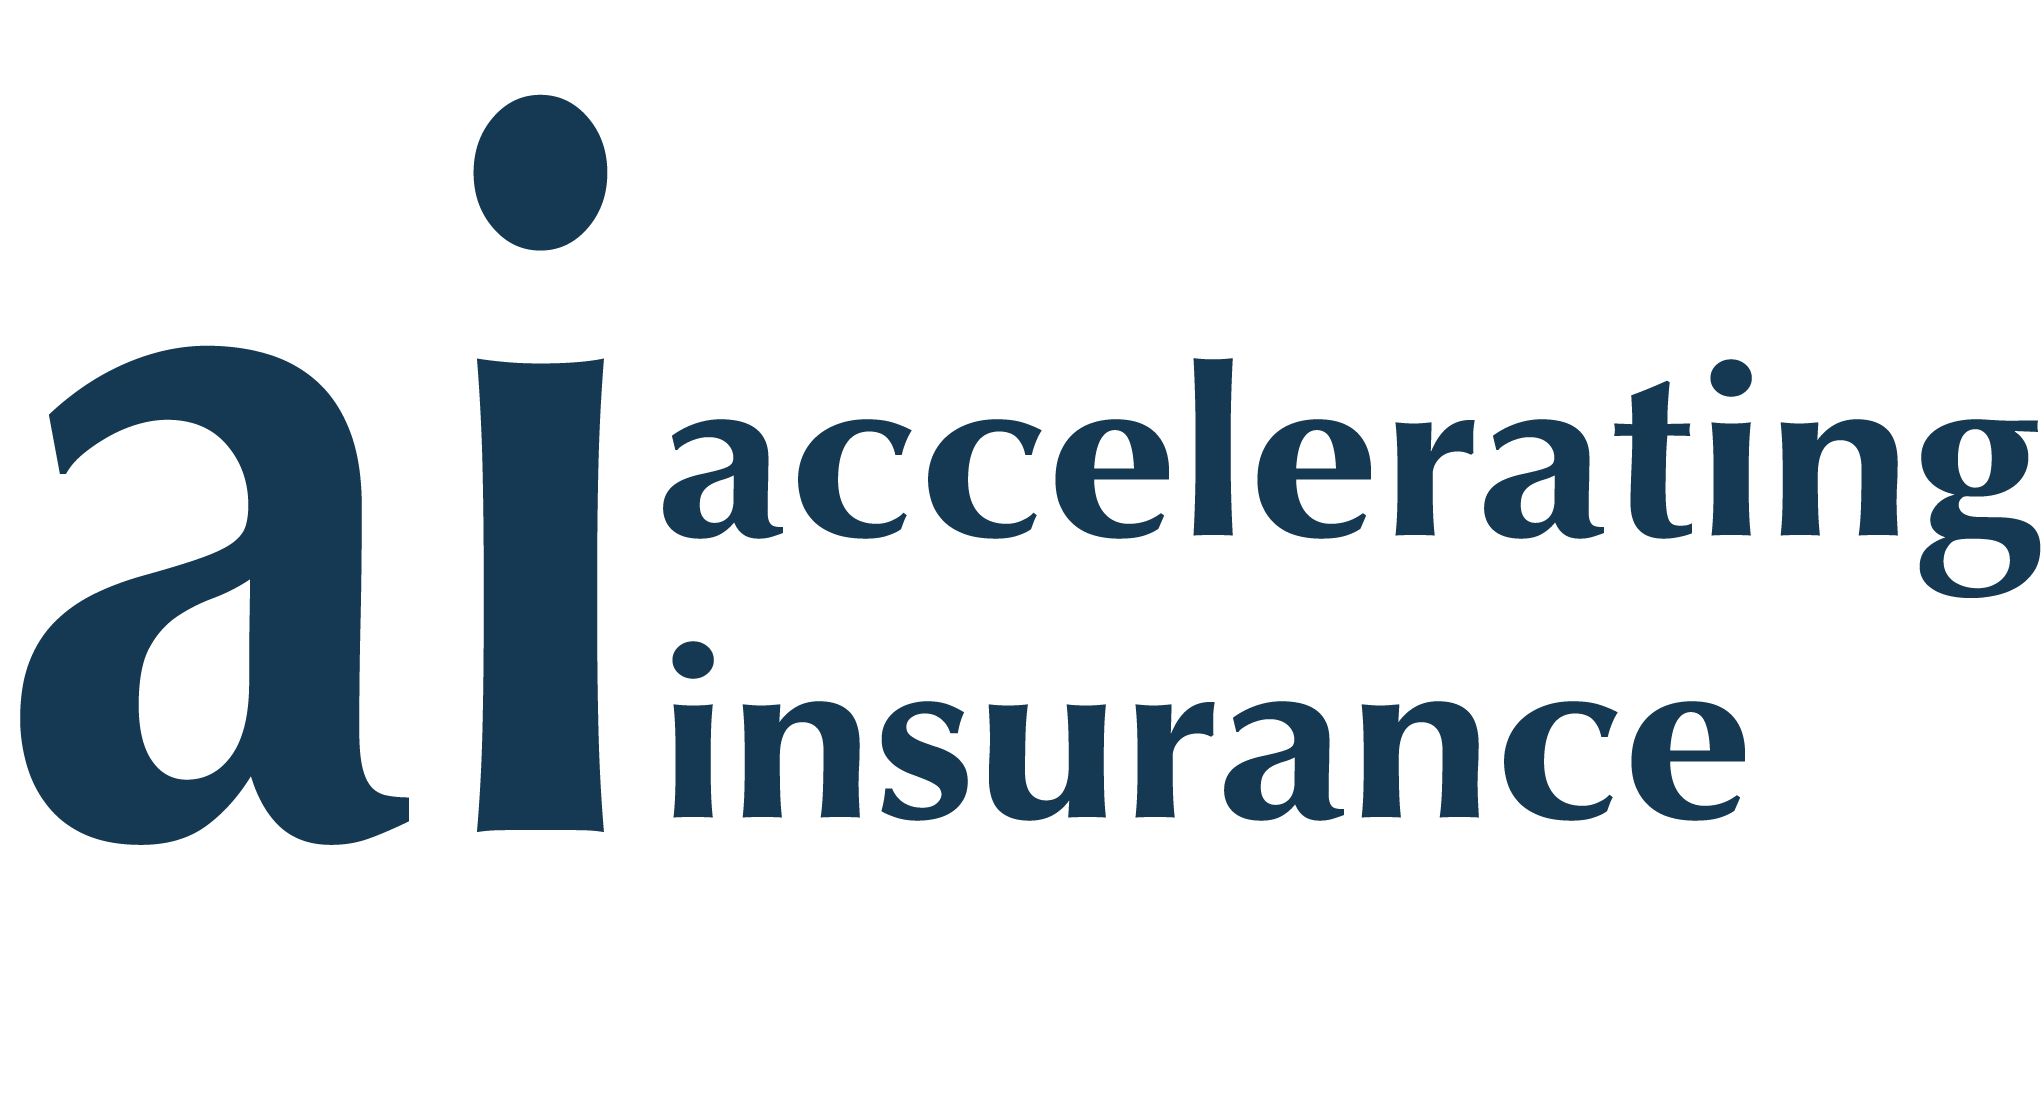 Accelerating Insurance